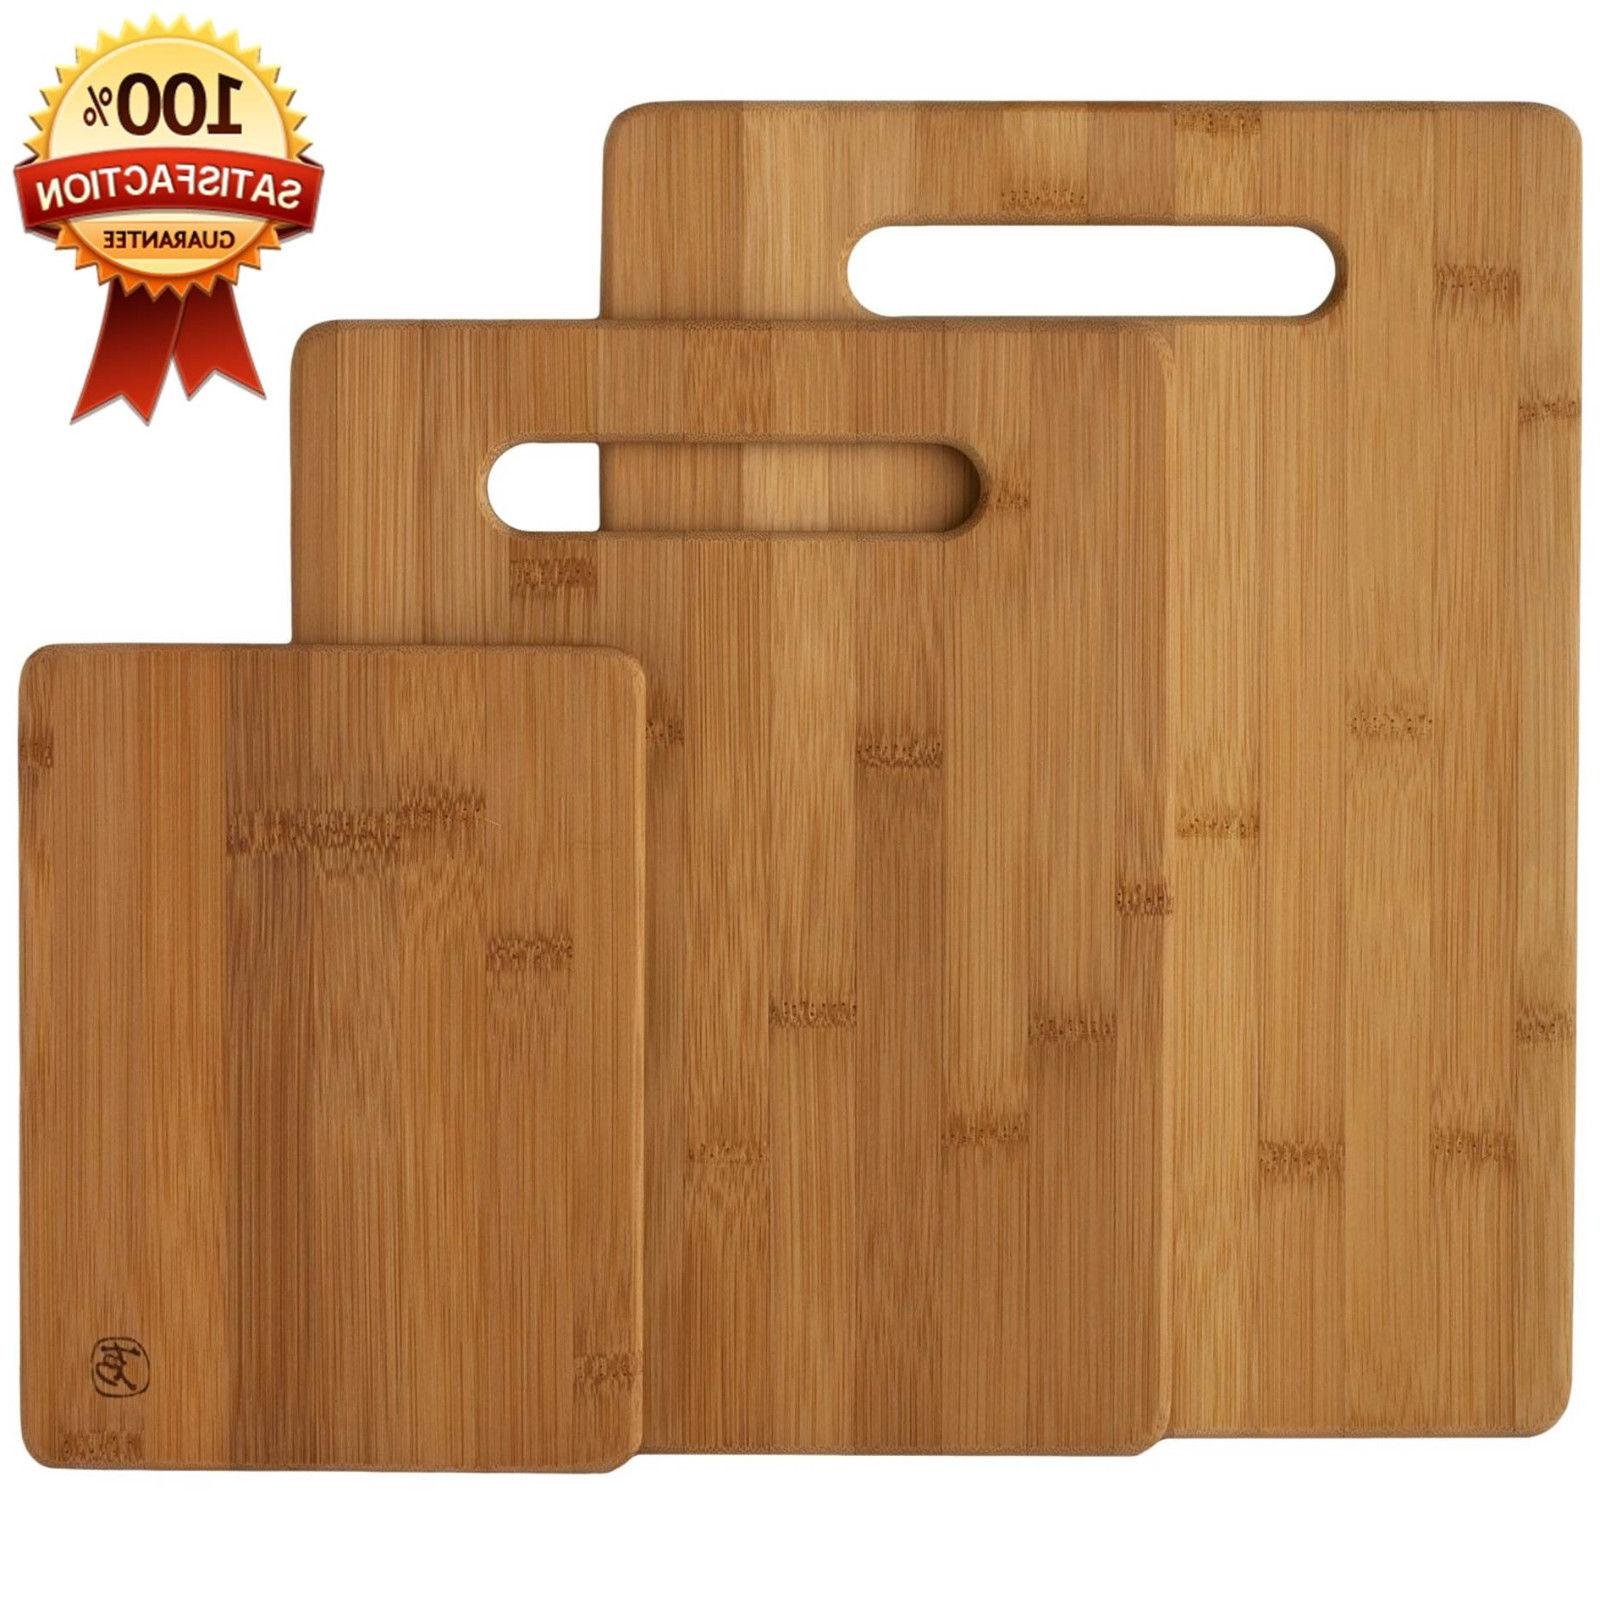 New Bamboo 3 Set Piece Cutting Board Totally Kitchen Wood Ch